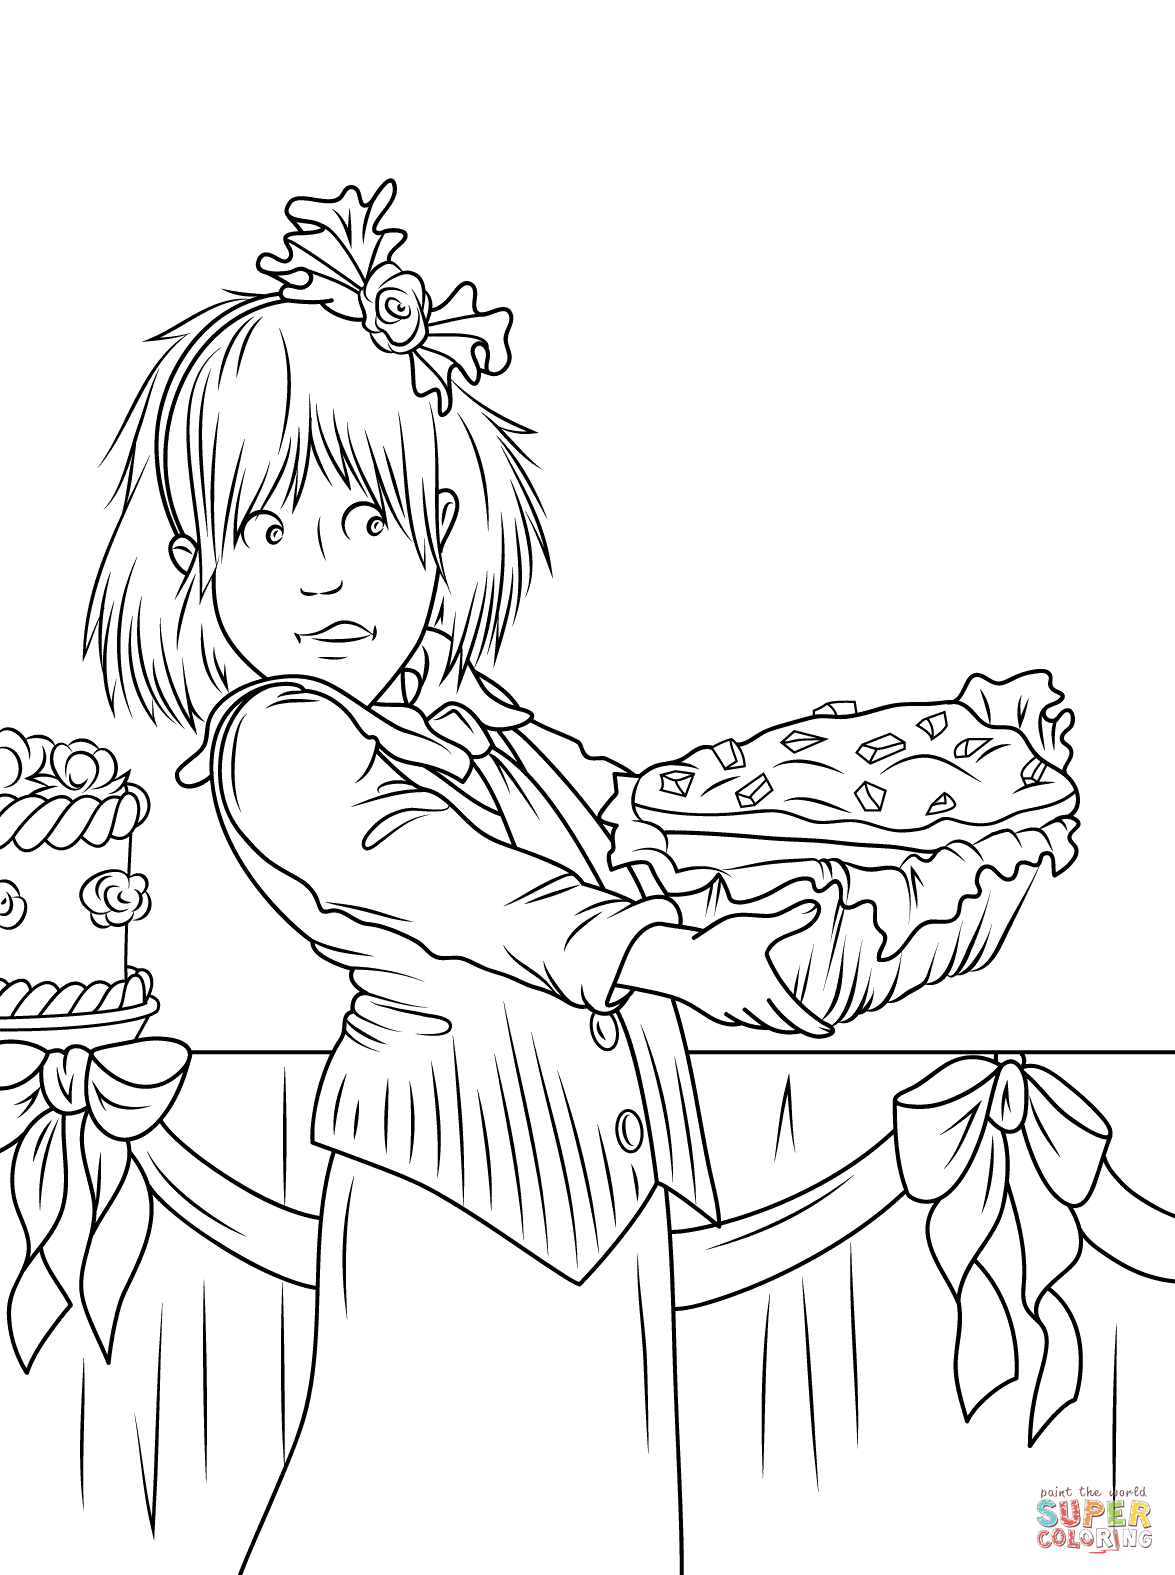 junie b jones coloring junie b jones coloring pages junie b jones coloring